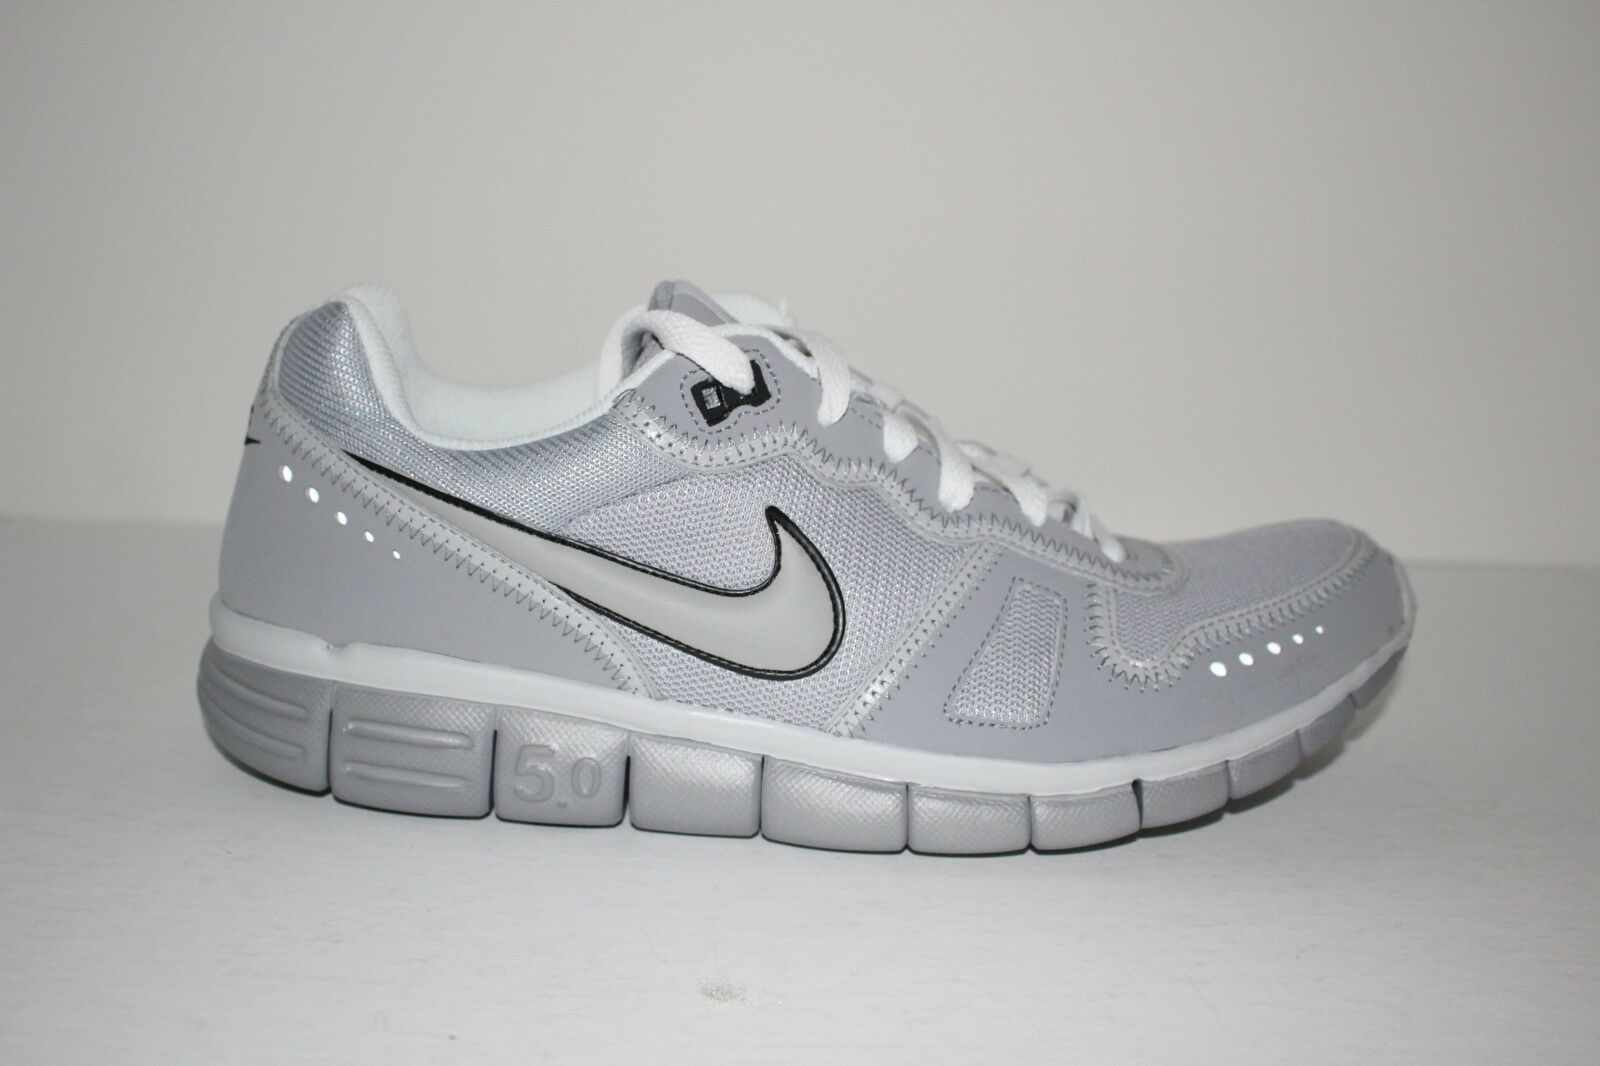 Nike Free Waffle AC Men's Running shoes Neutral Grey Jogging Trainers 443913 101